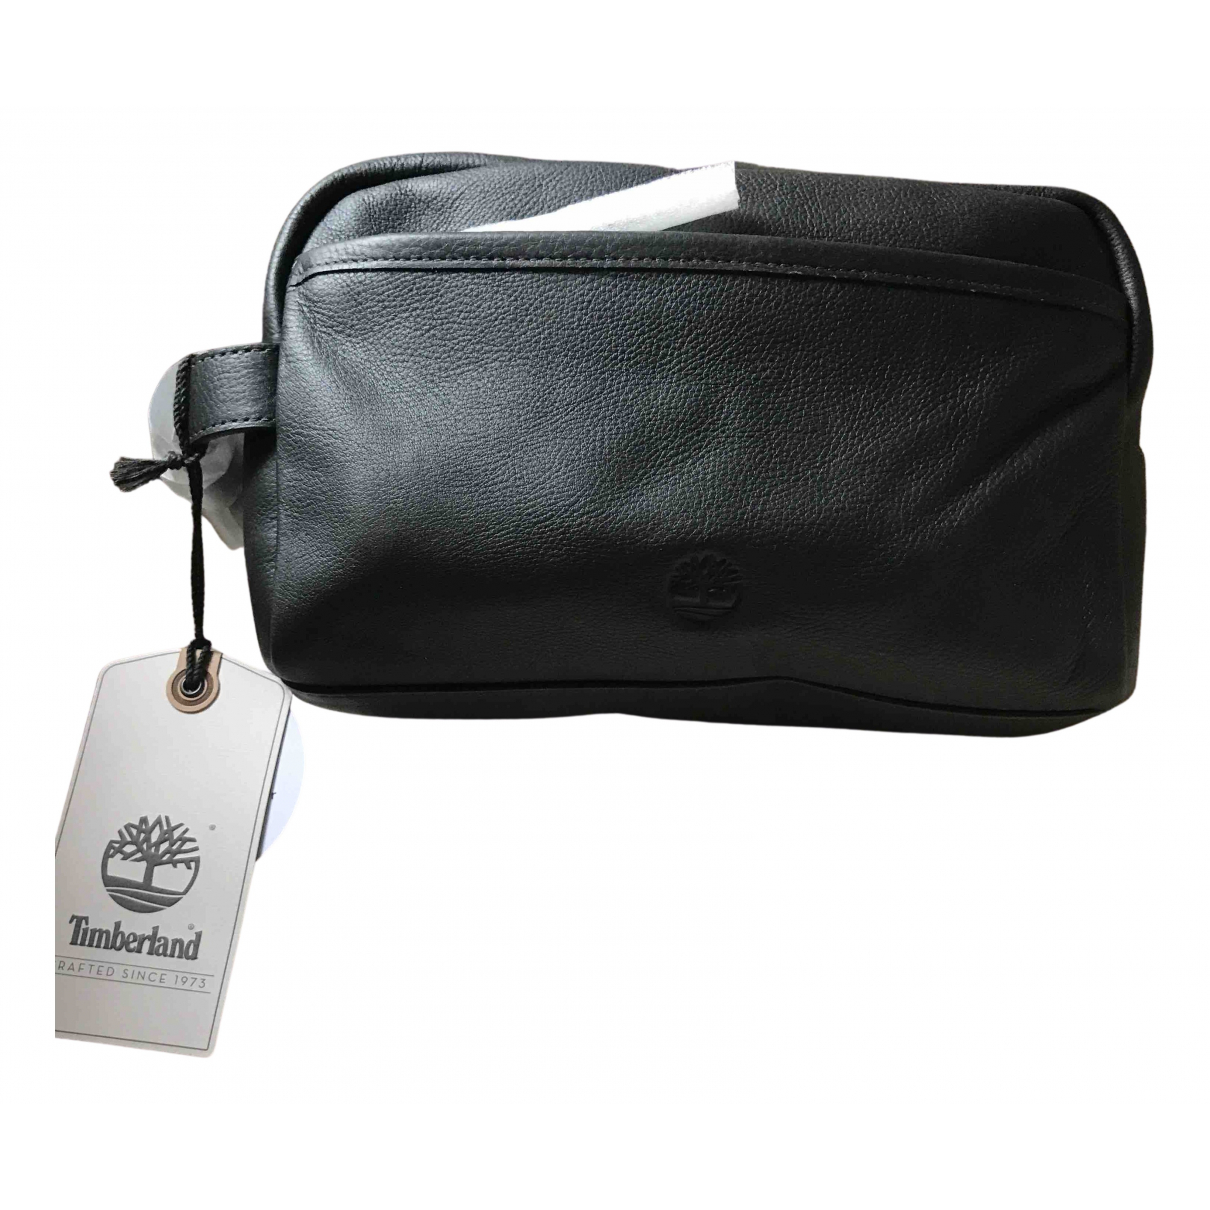 Timberland N Black Leather Small bag, wallet & cases for Men N